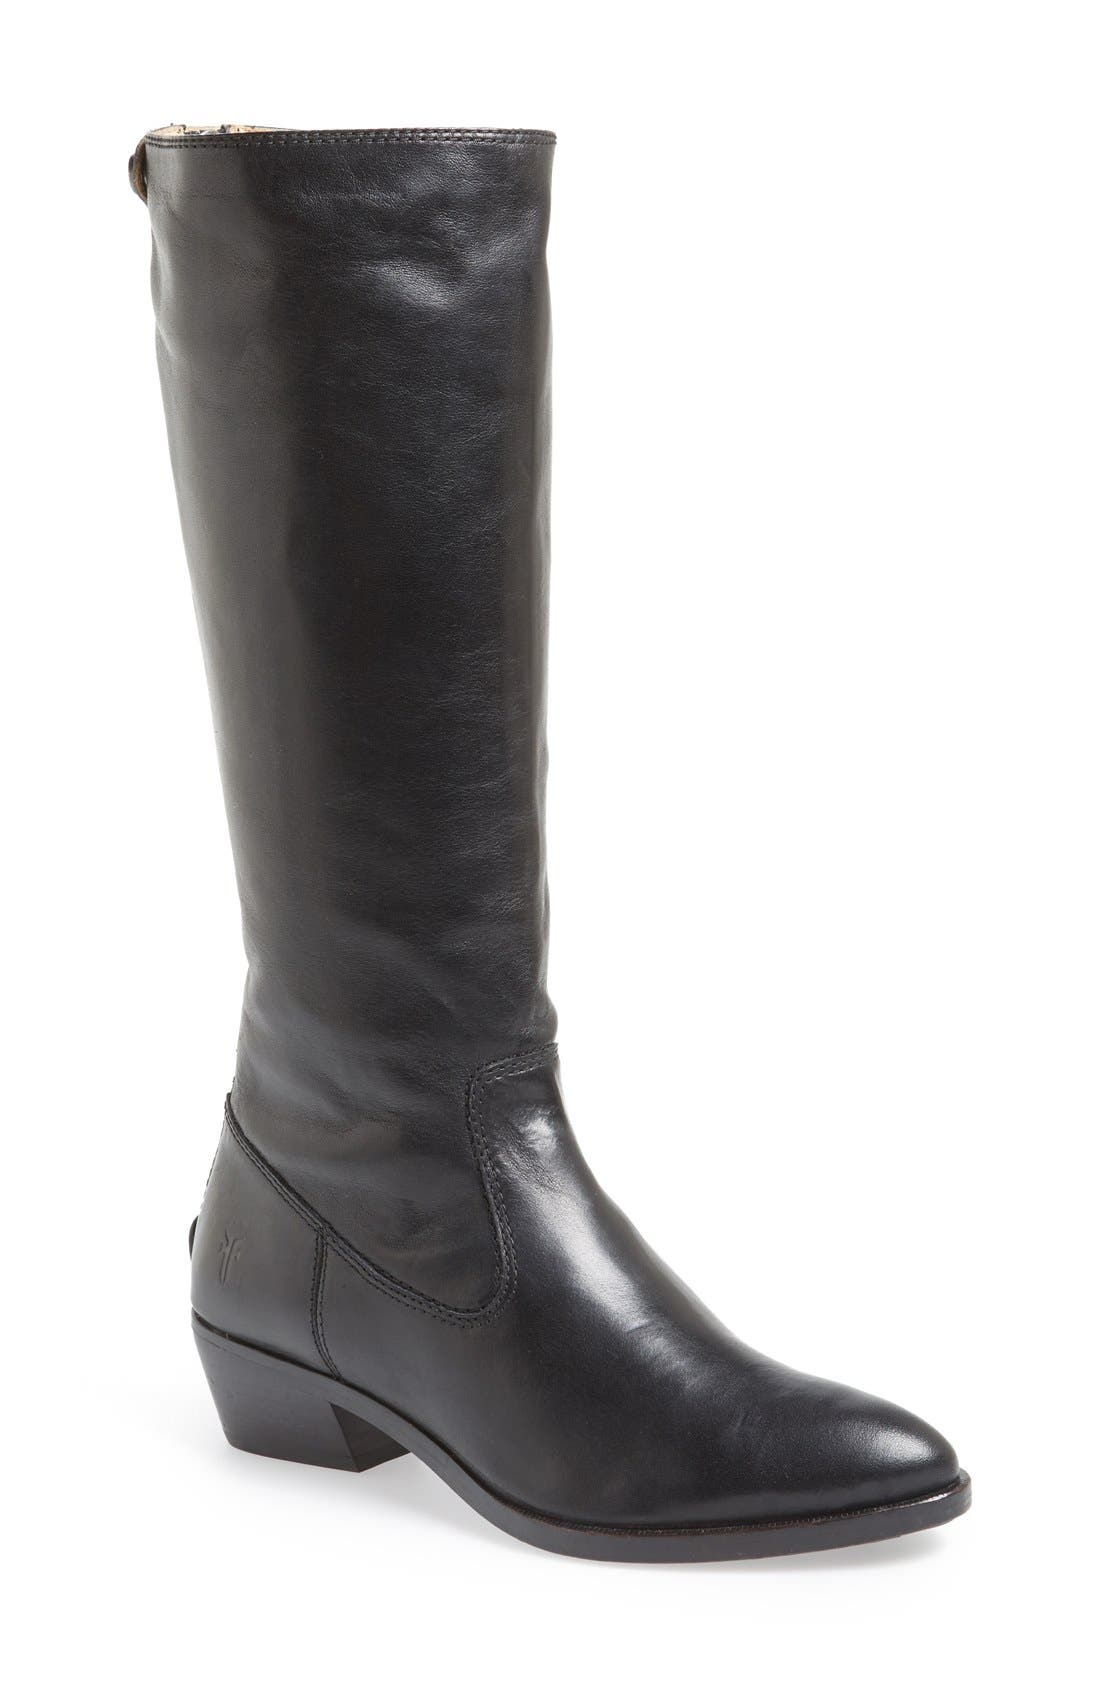 Alternate Image 1 Selected - Frye 'Ruby' Tall Boot (Women)